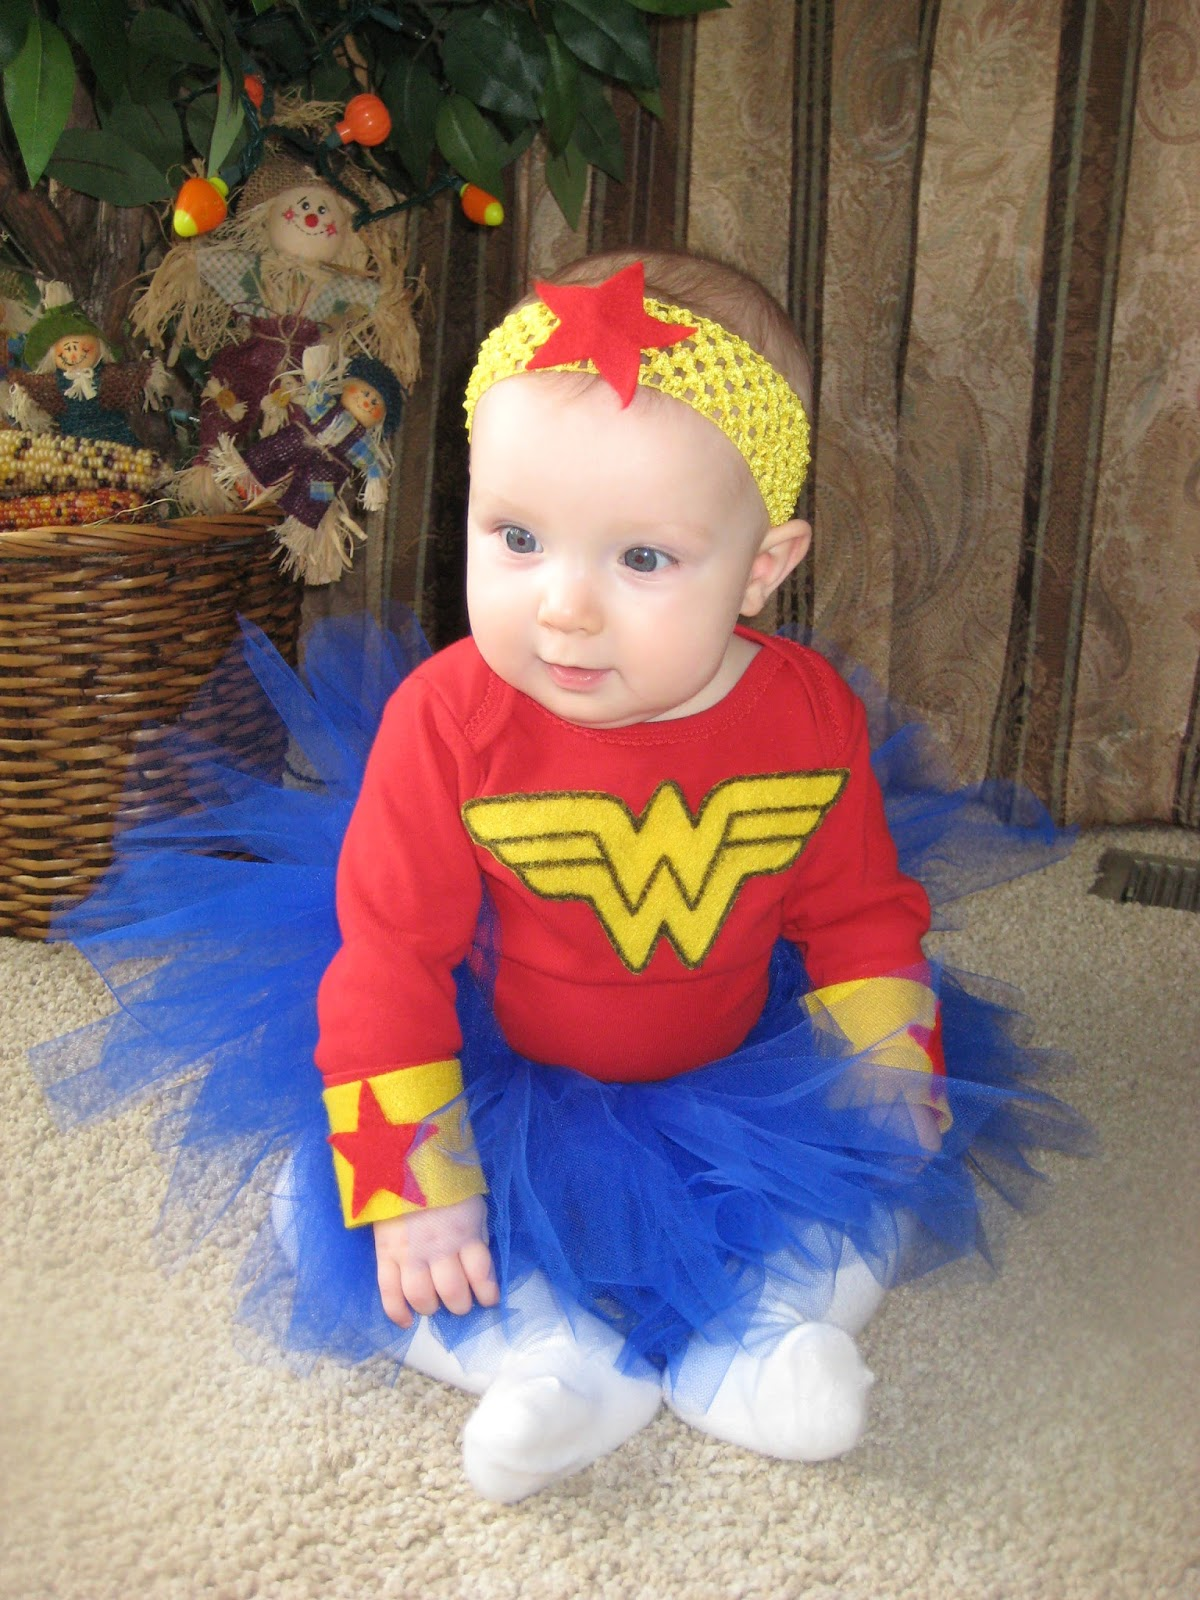 Sweet Little Ones Diy Halloween Costume Ideas